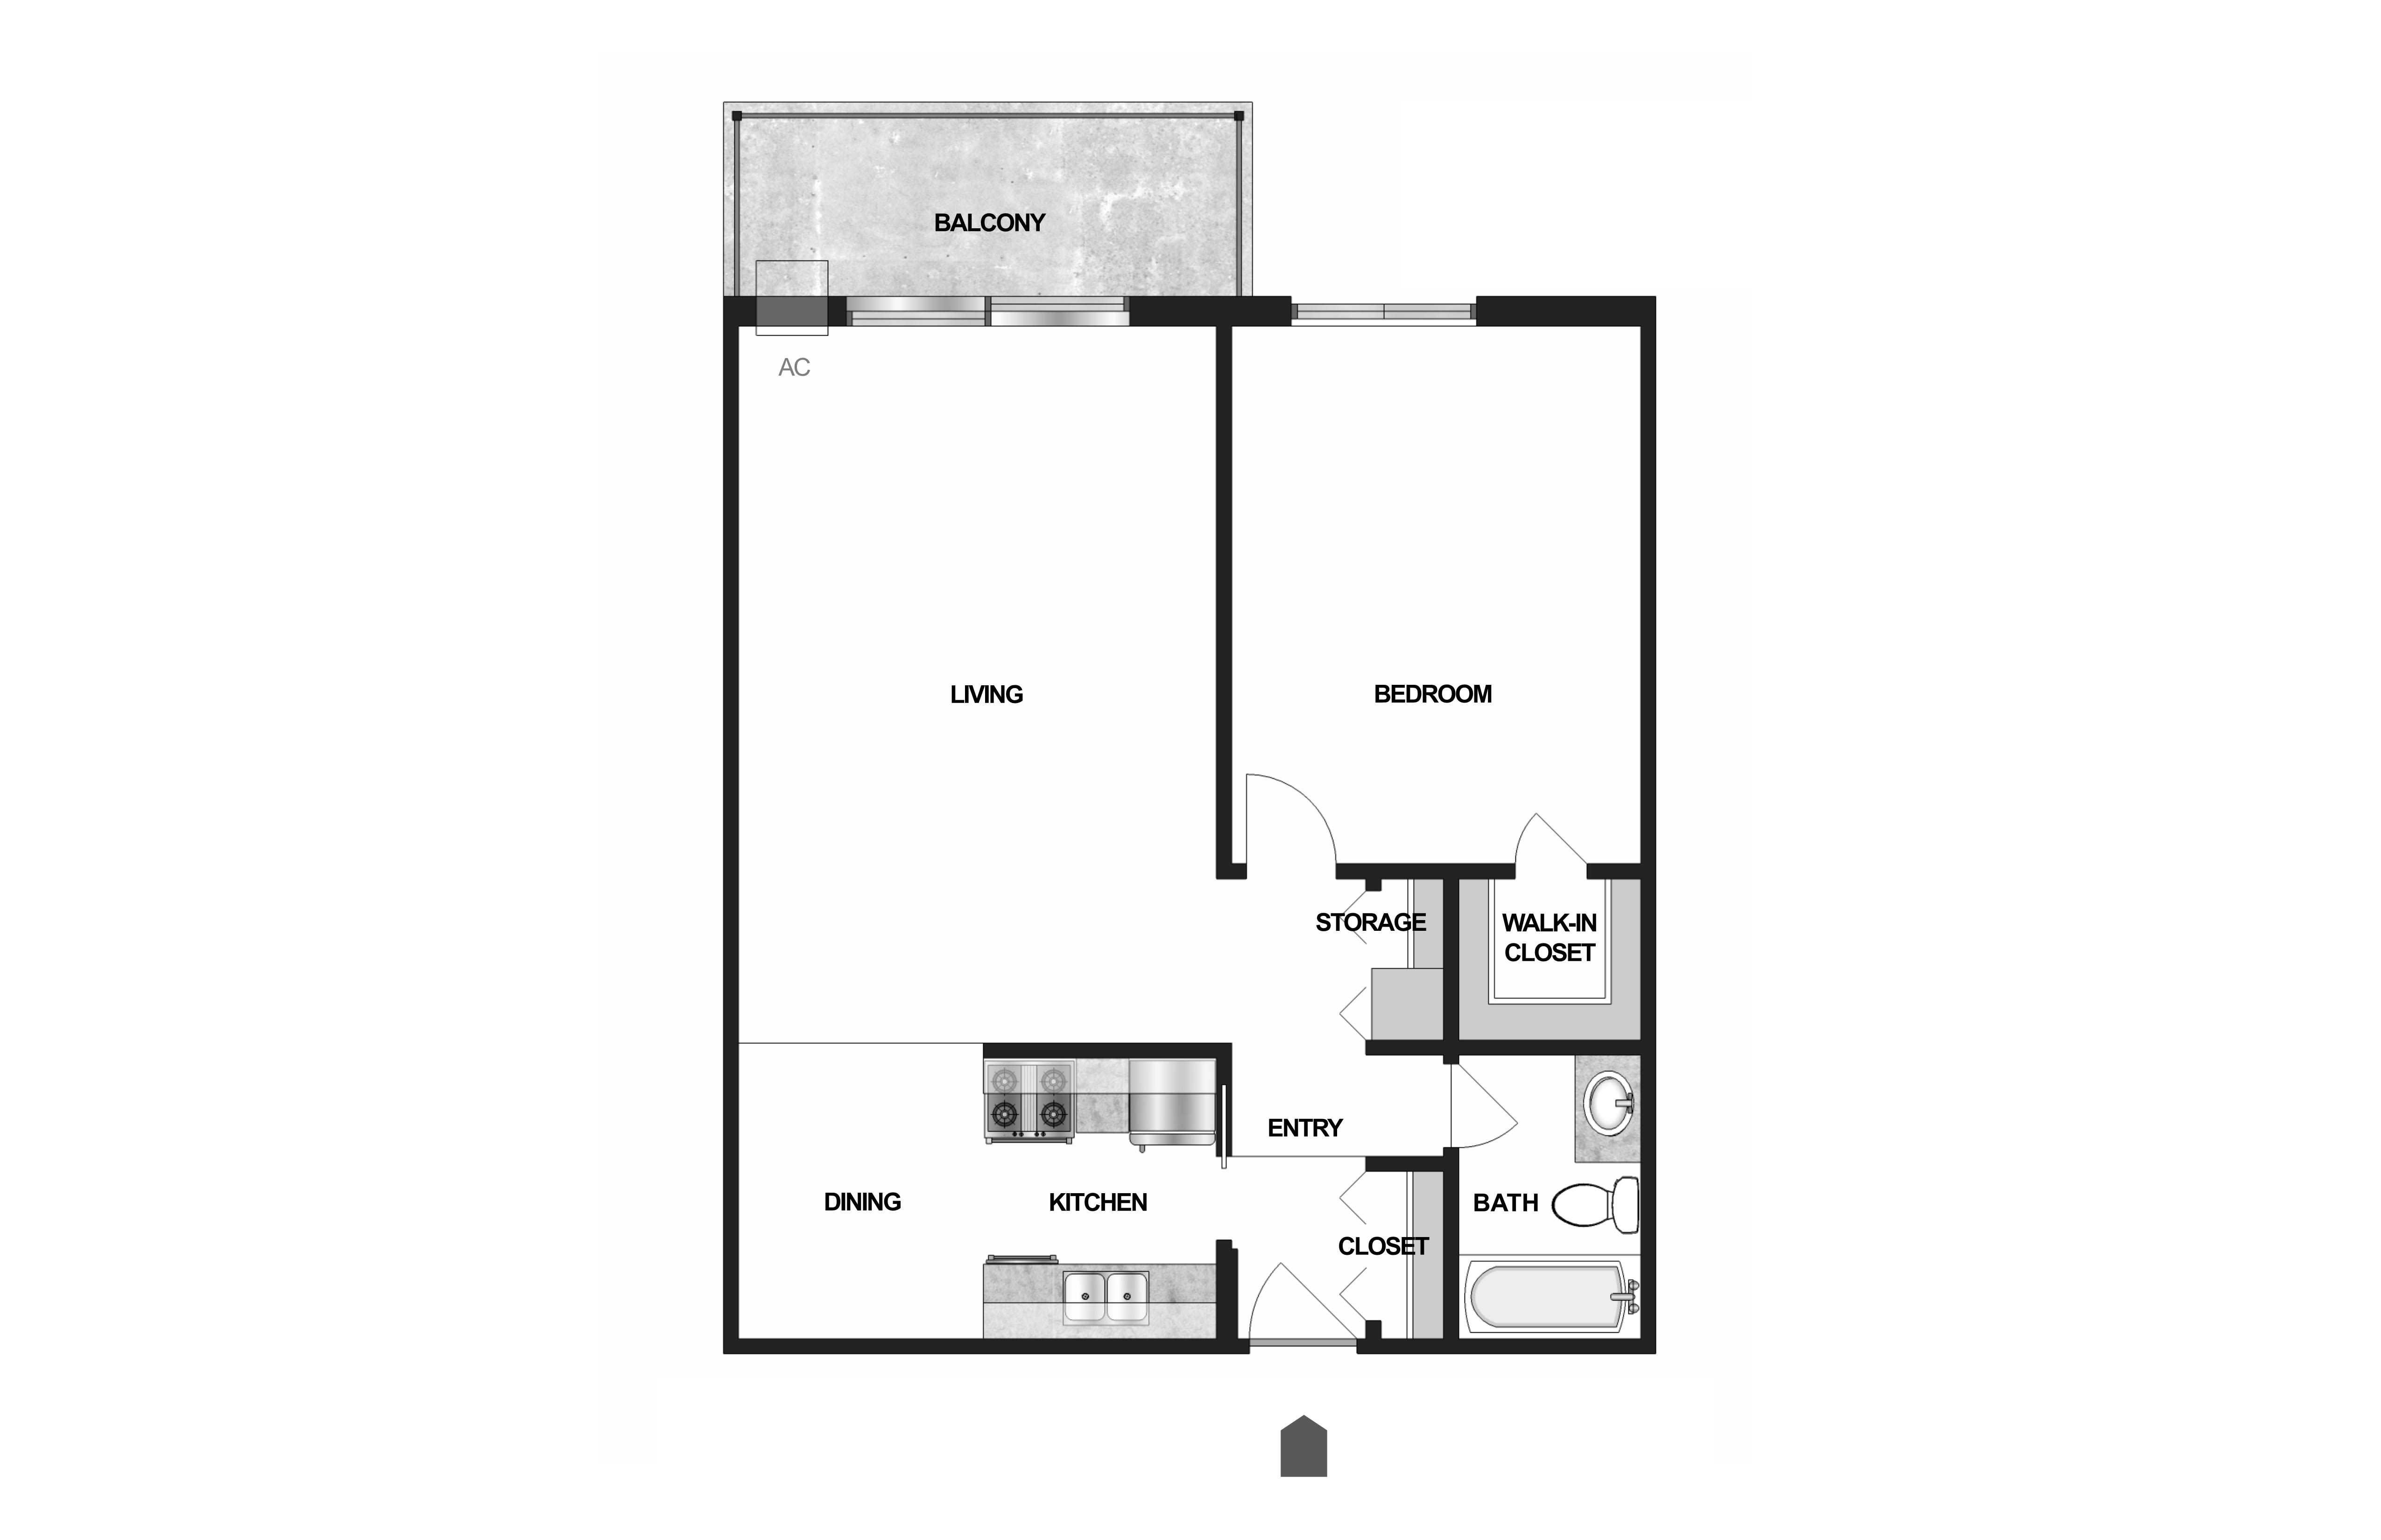 Floor Plan  Villages on McKnight Apartments in North St. Paul 1 Bedroom 1 Bath, opens a dialog